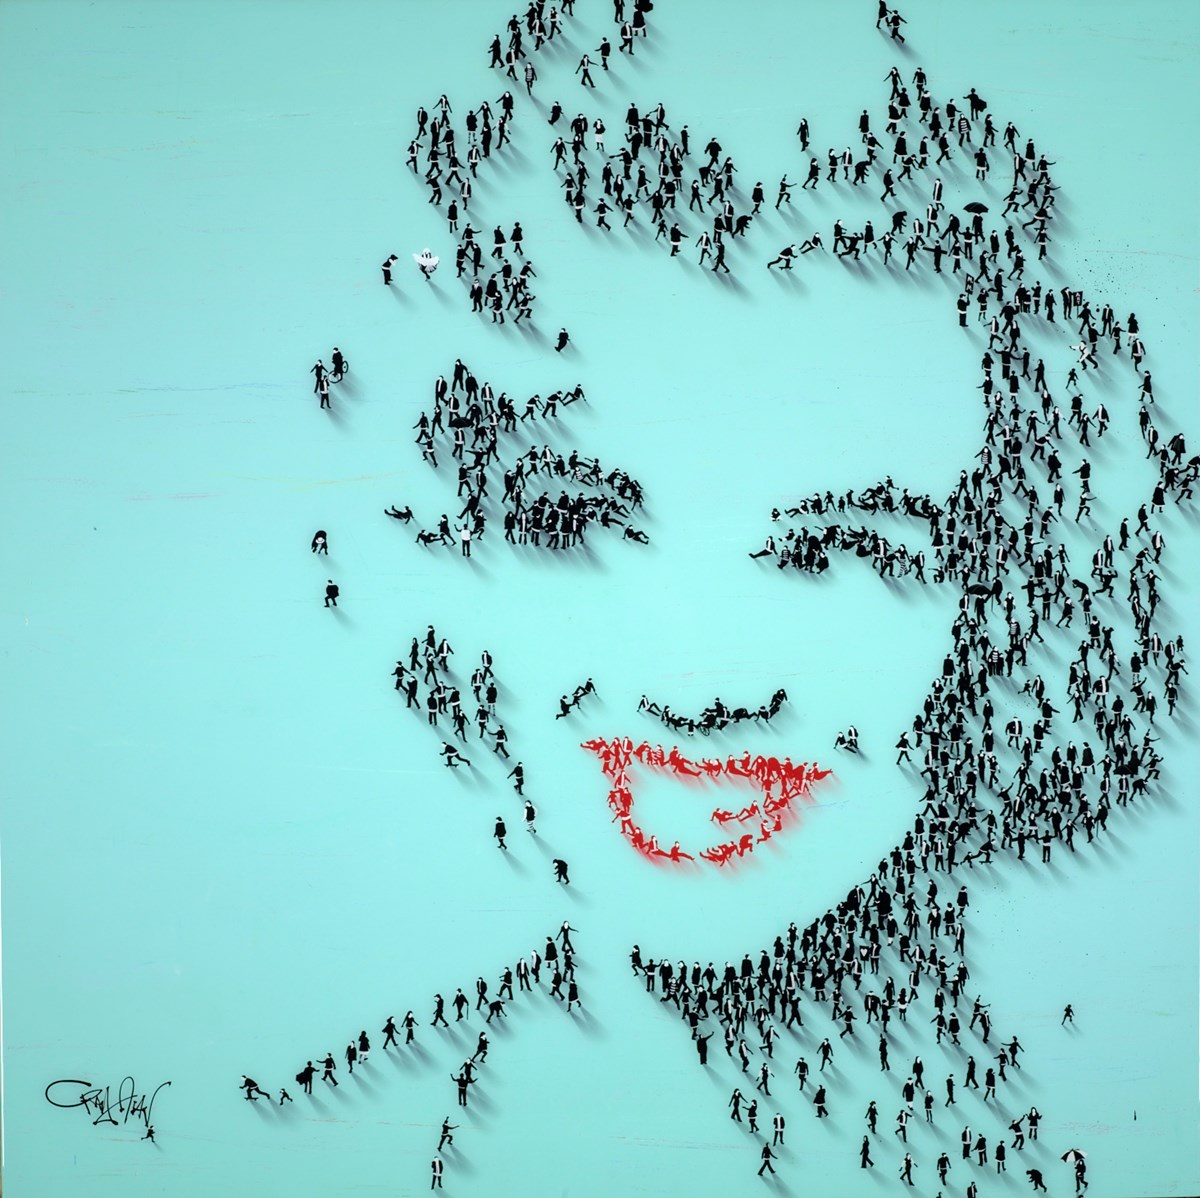 Mocambo Smile by craig alan -  sized 36x36 inches. Available from Whitewall Galleries